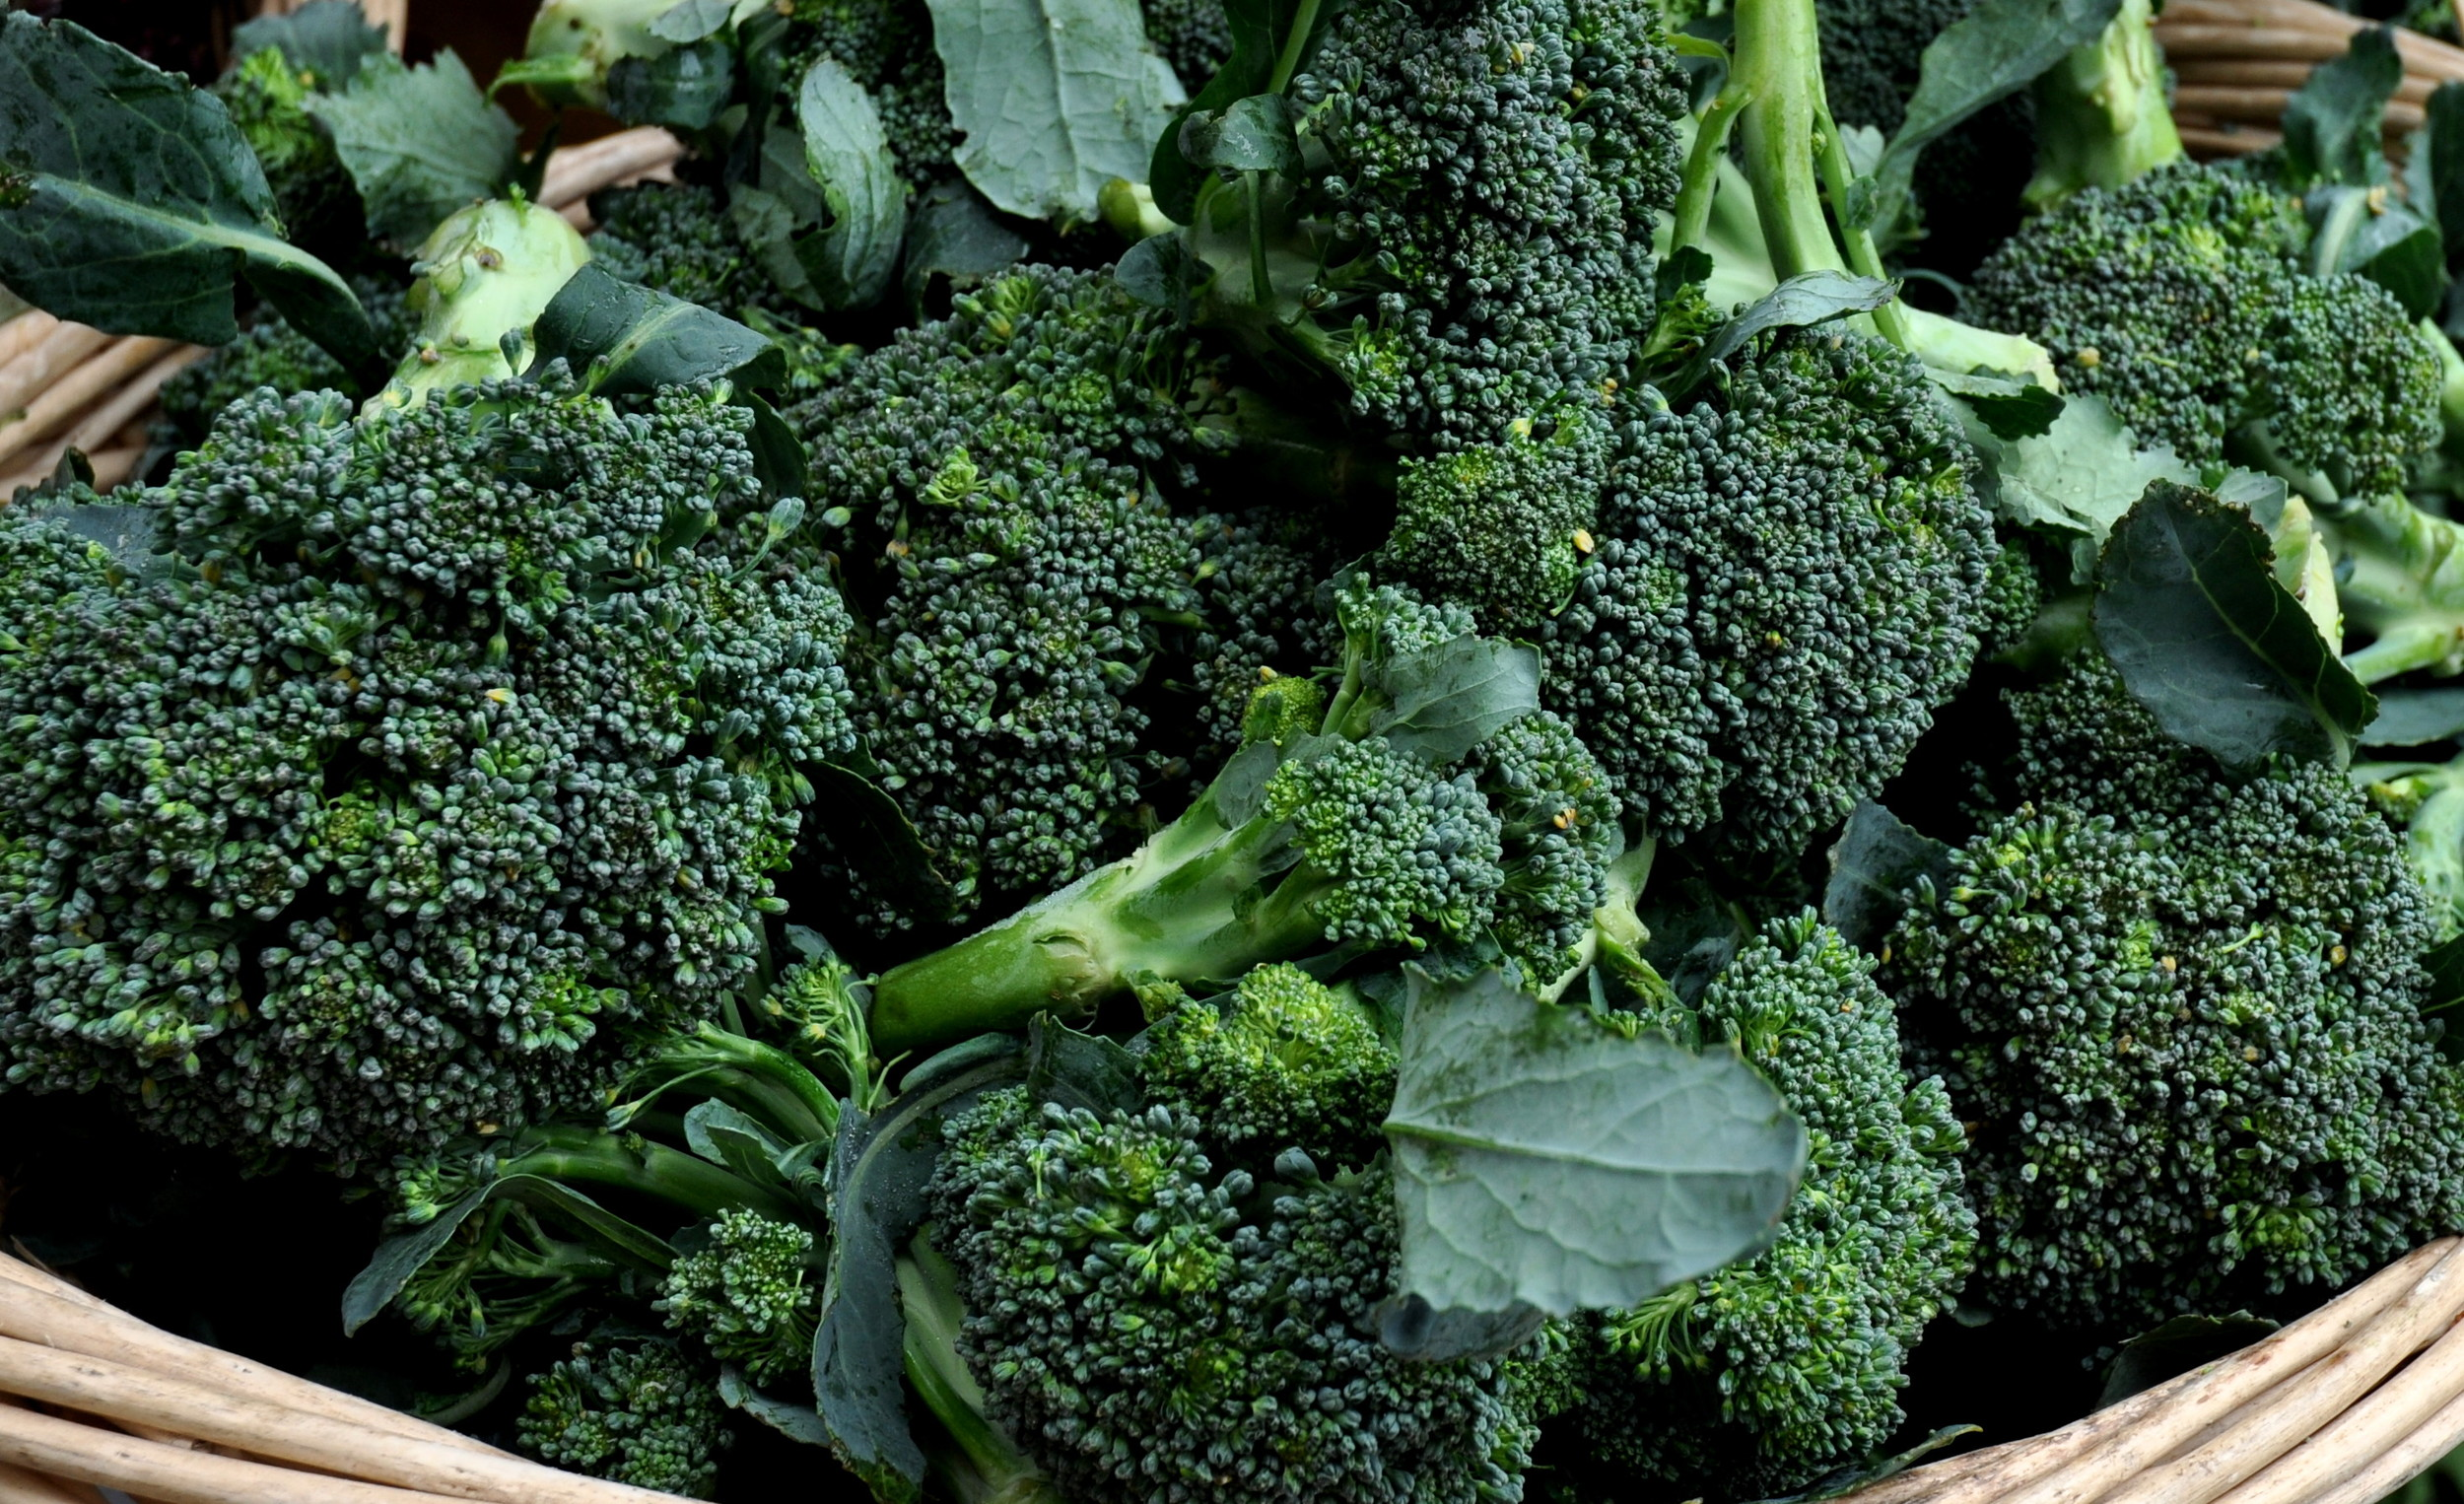 Broccoli from Oxbow Farm. Photo copyright 2013 by Zachary D. Lyons.